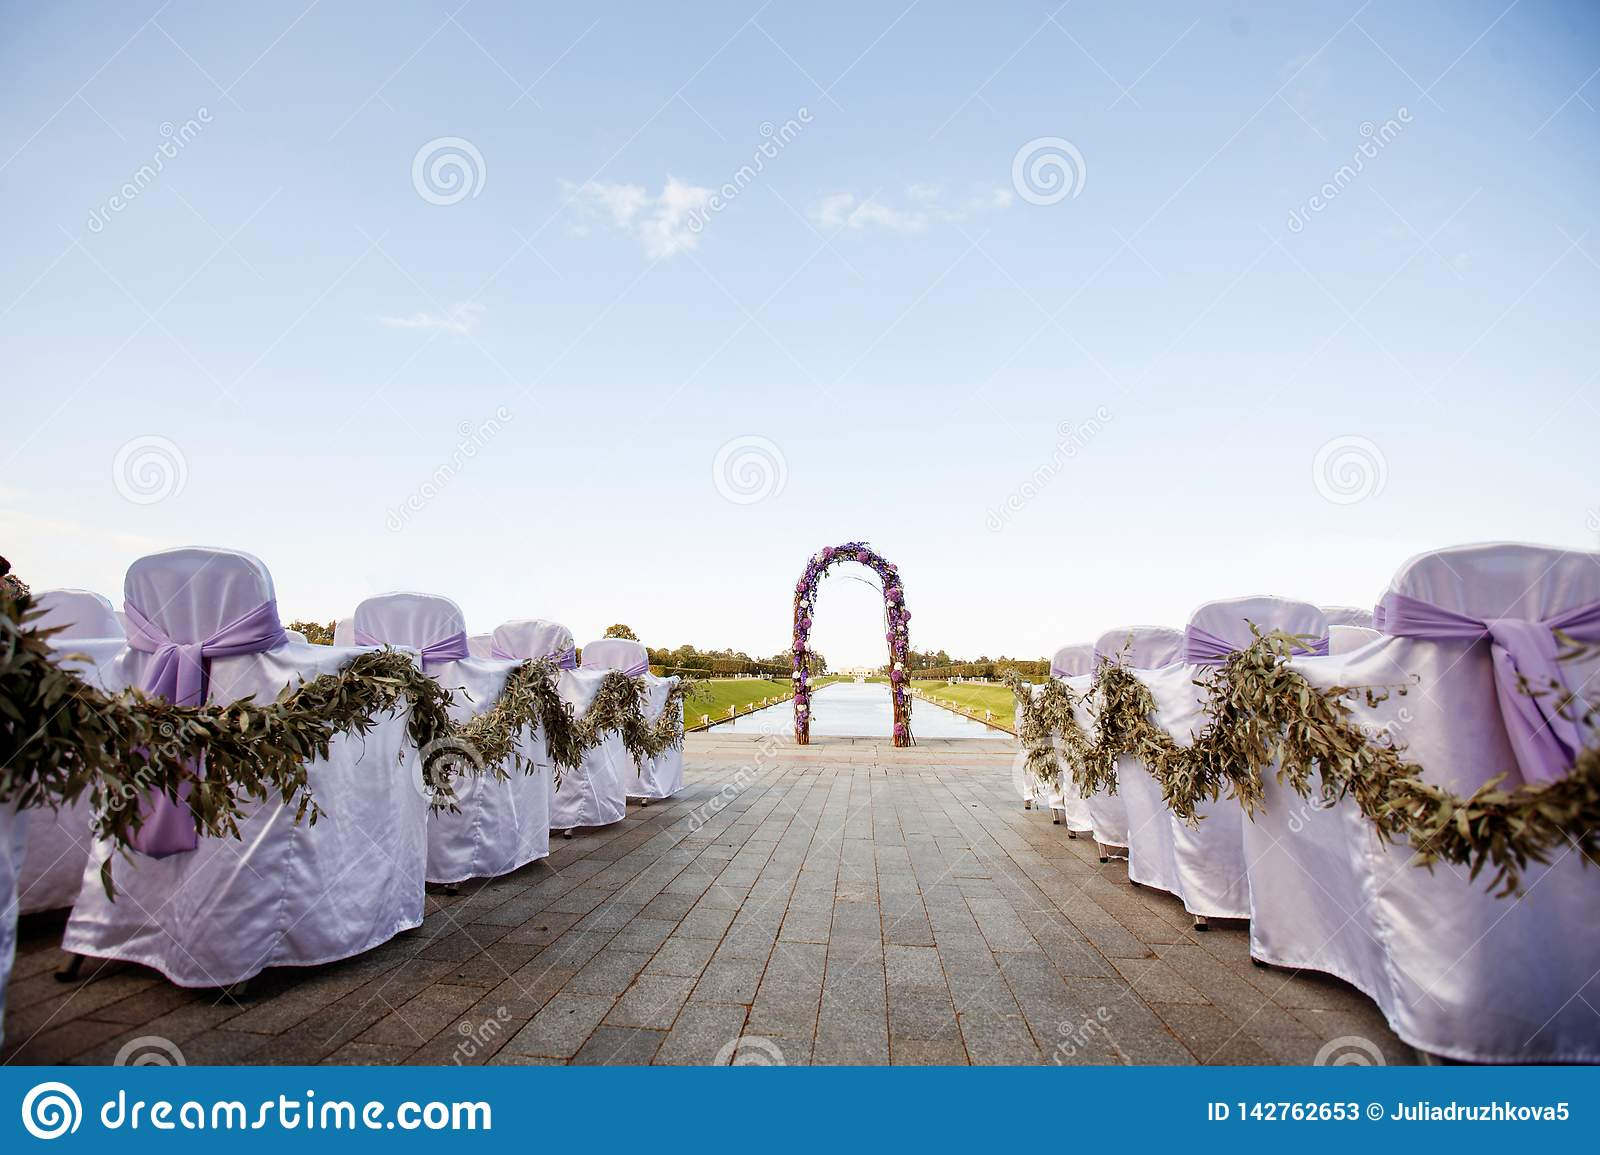 Beautiful wedding. The round arch is decorated with flowers and greenery, the ceremony on the seashore. Guest chairs are decorated